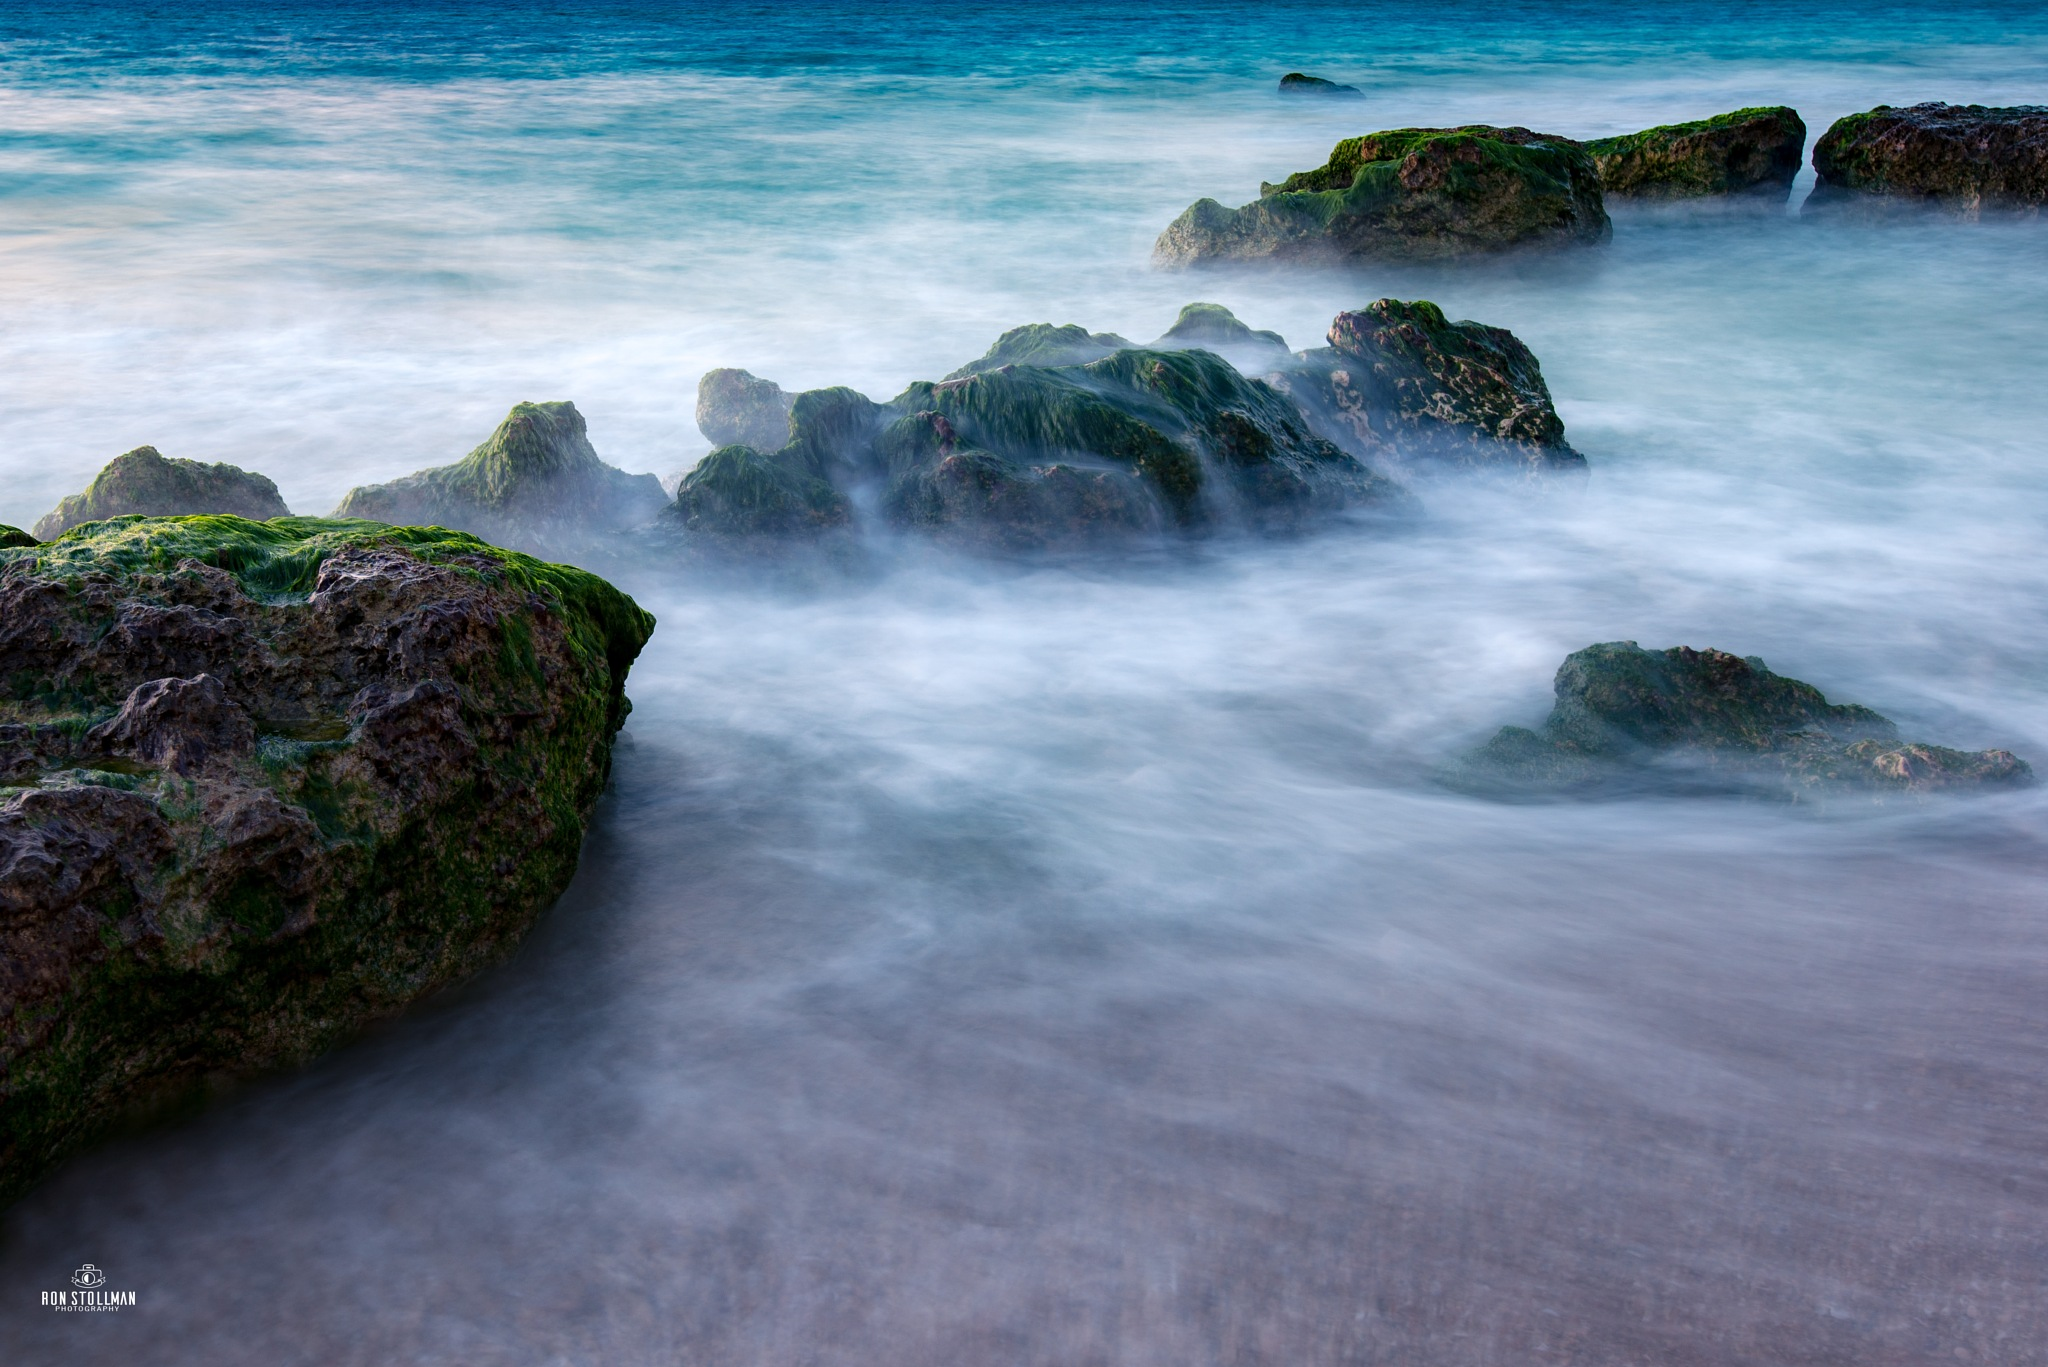 Misty Shore by Ron Stollman